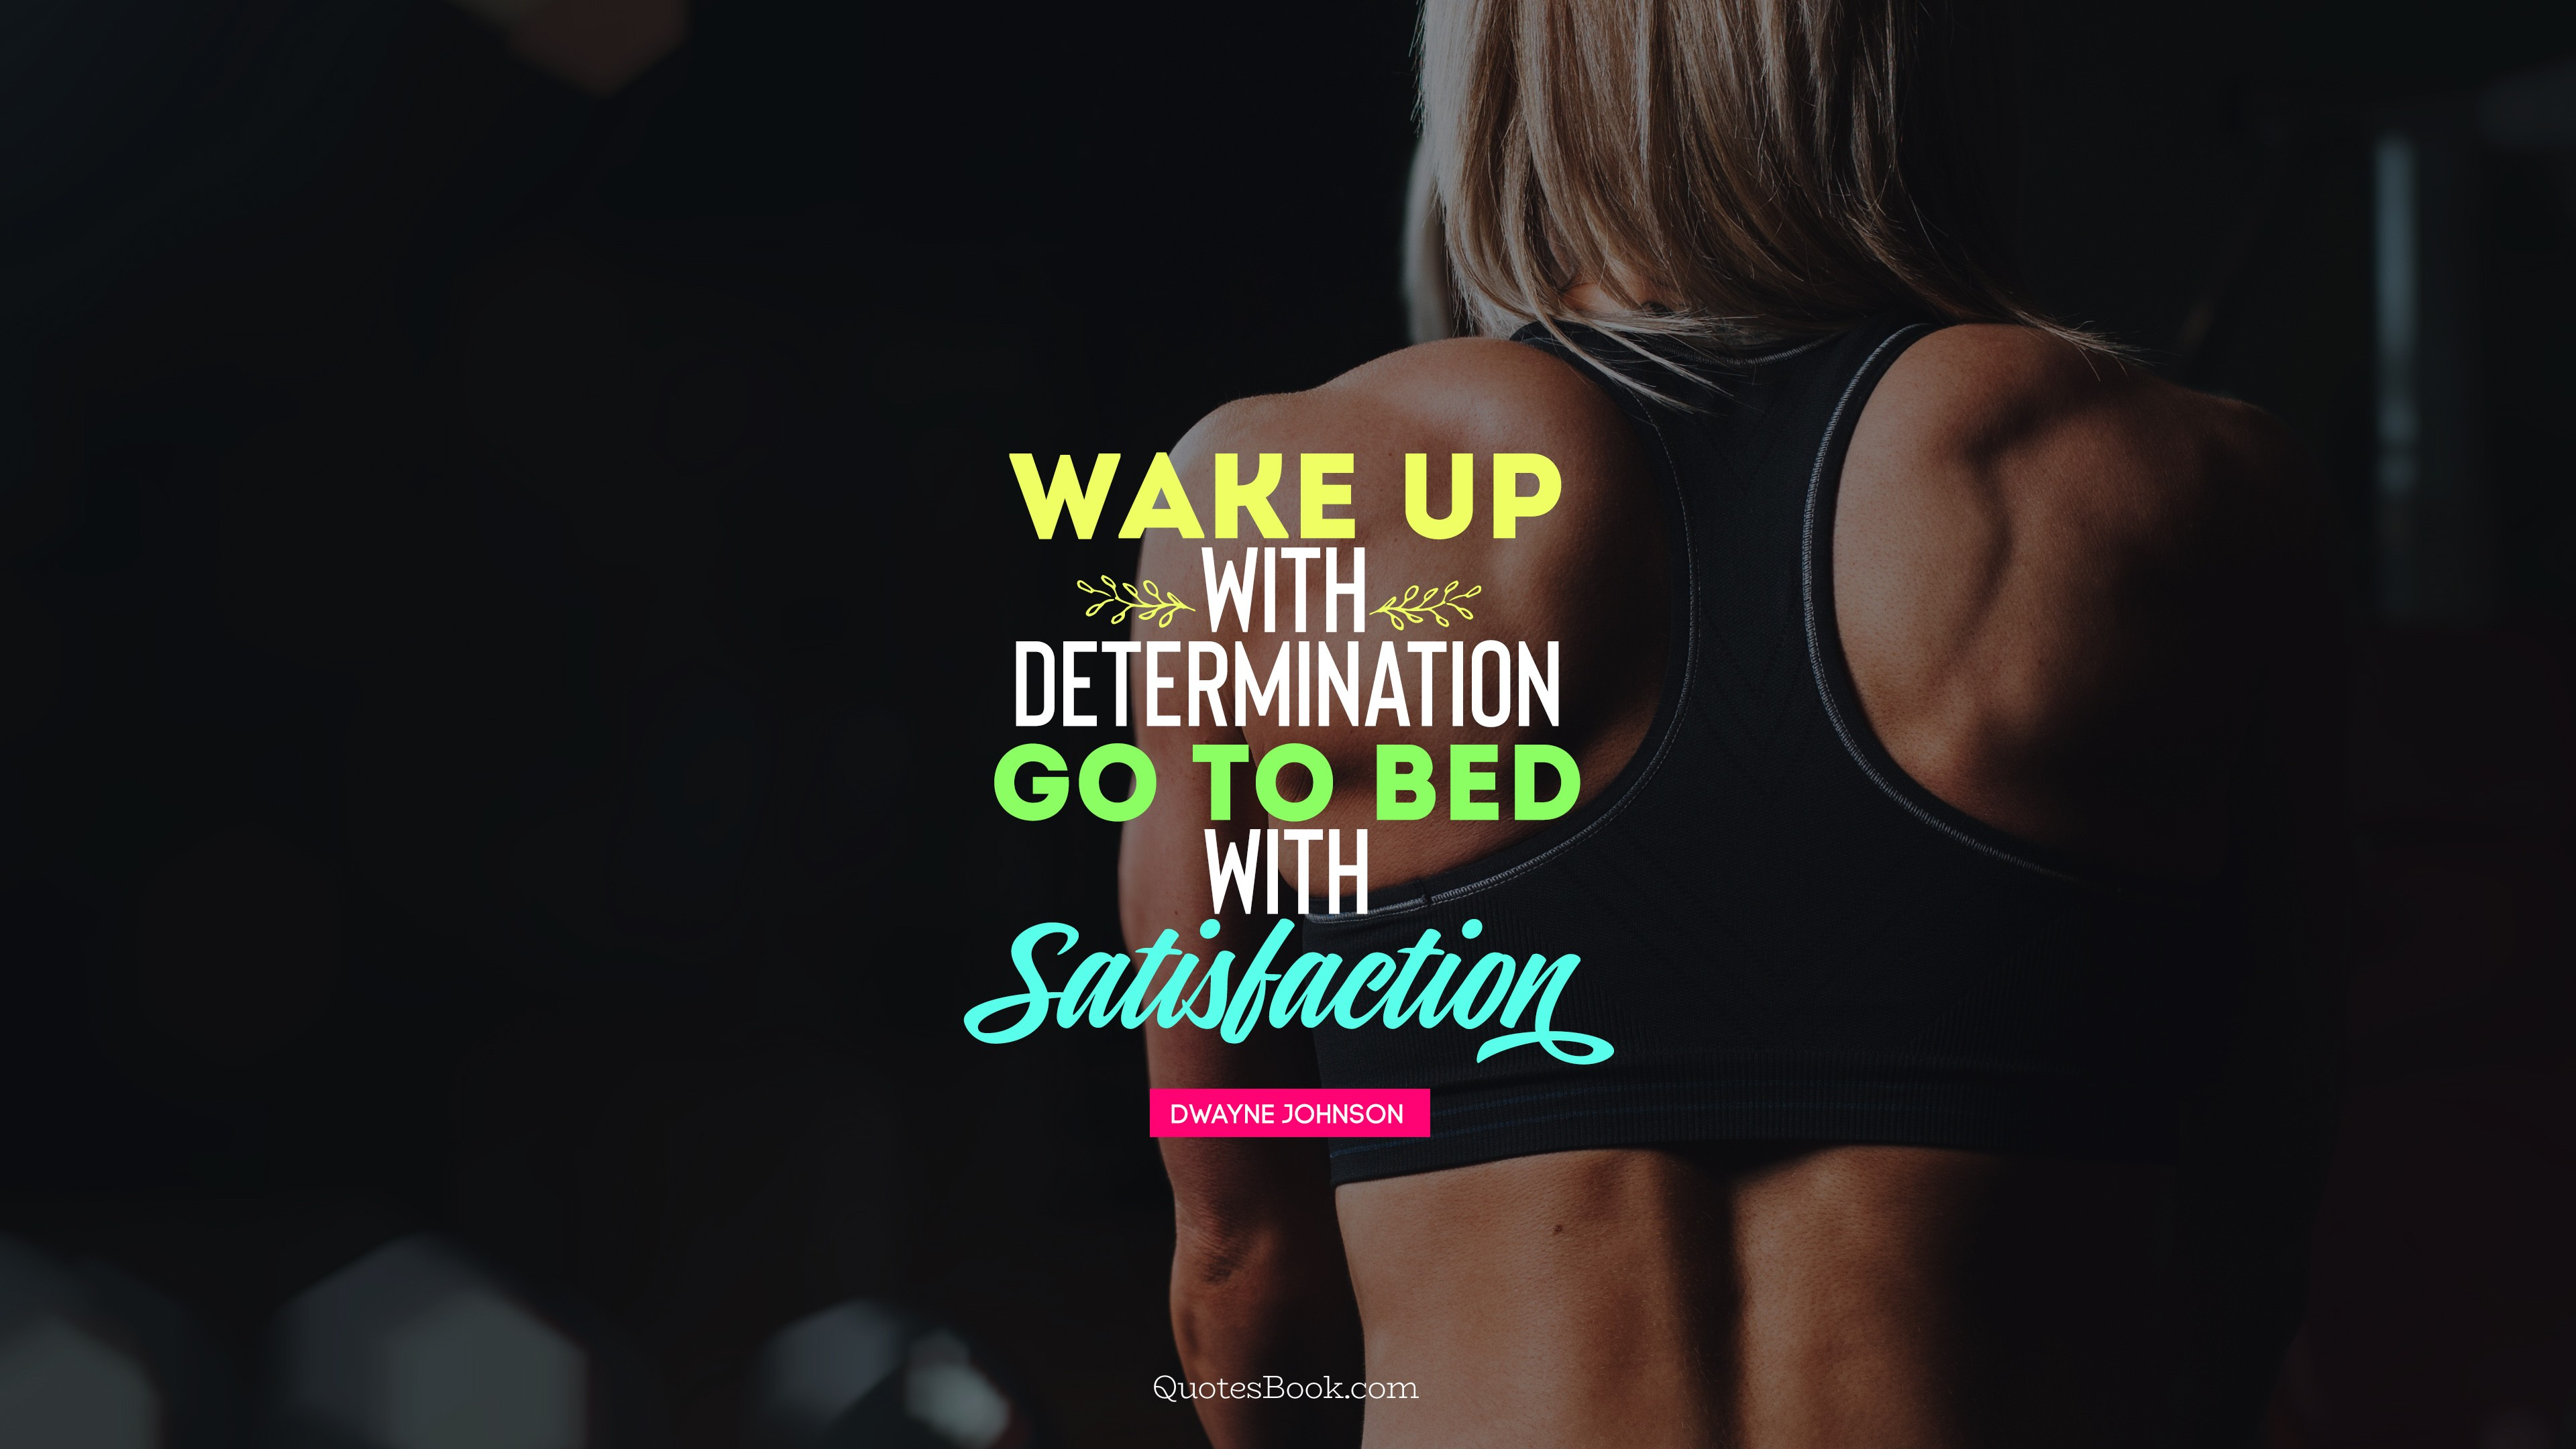 Wake Up With Determination Go To Bed With Satisfaction Quote By